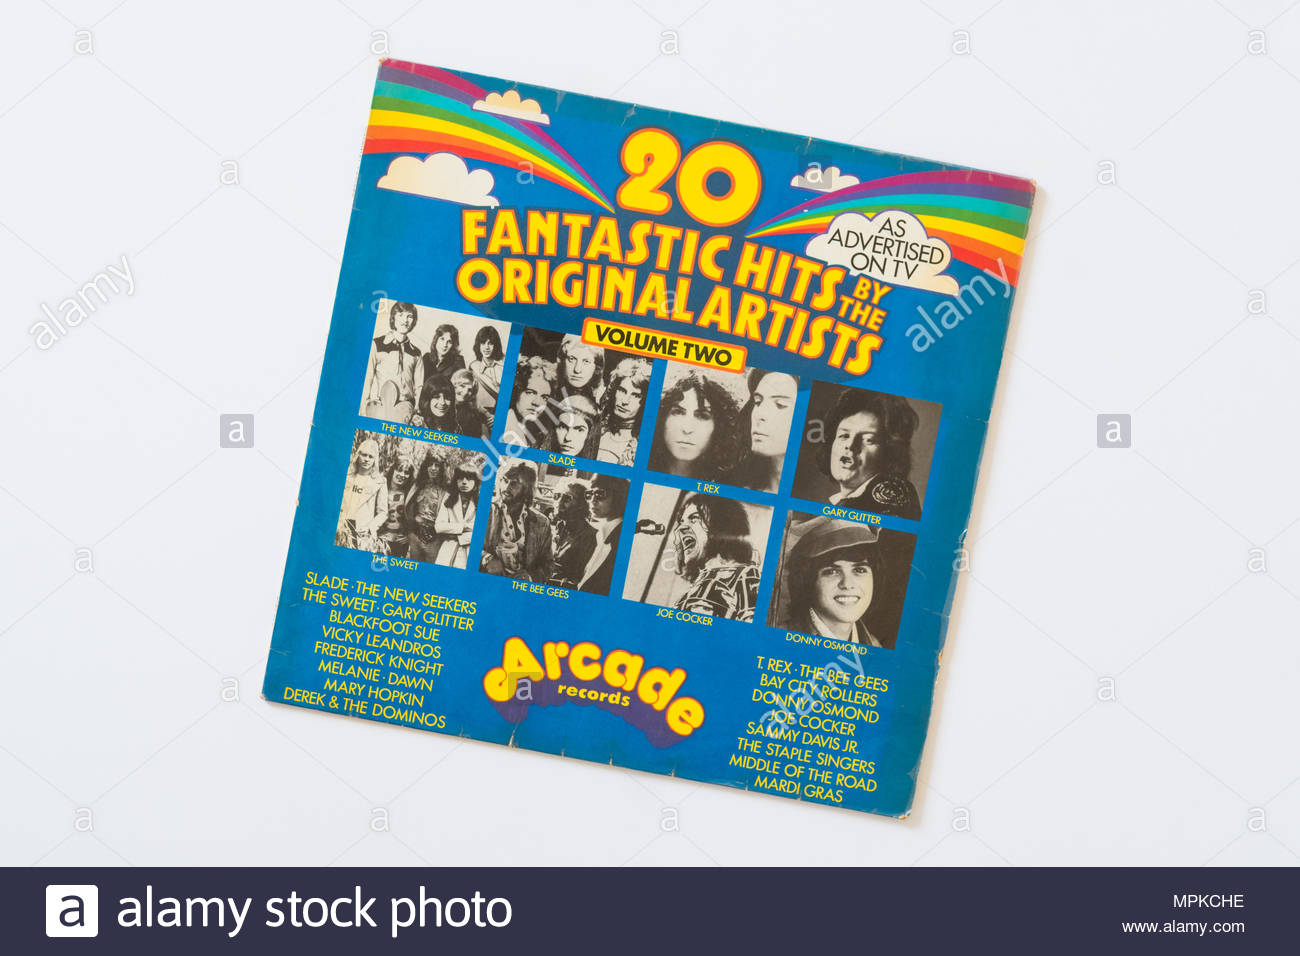 Arcade Records 1970's music compilation vinyl record - 20 Fantastic Hits by the Original Artists - Stock Image